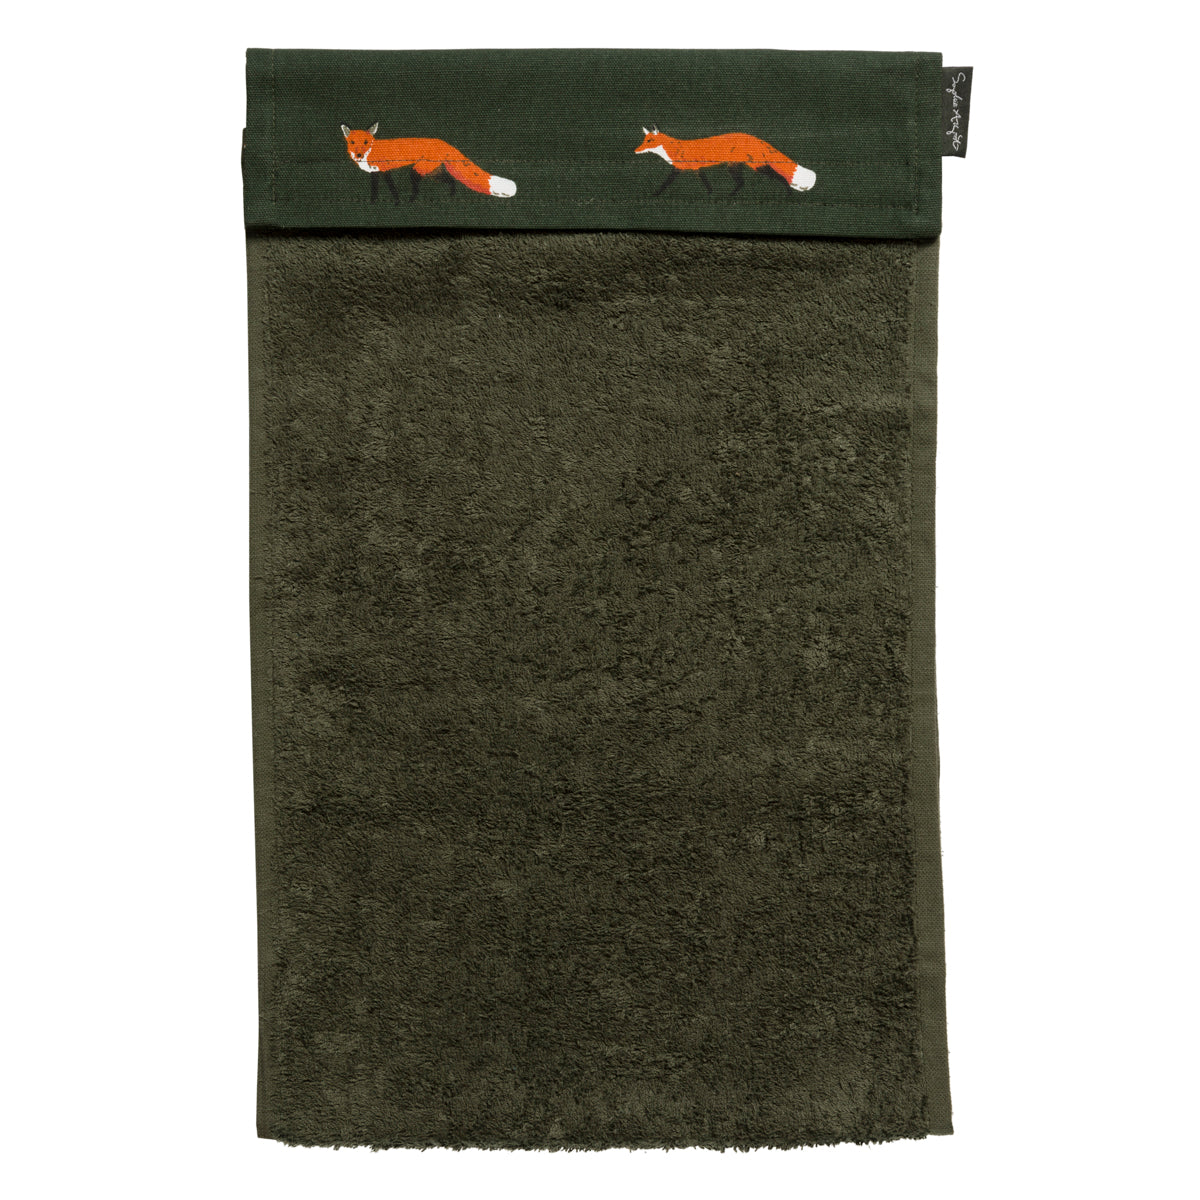 Foxes Roller Hand Towel